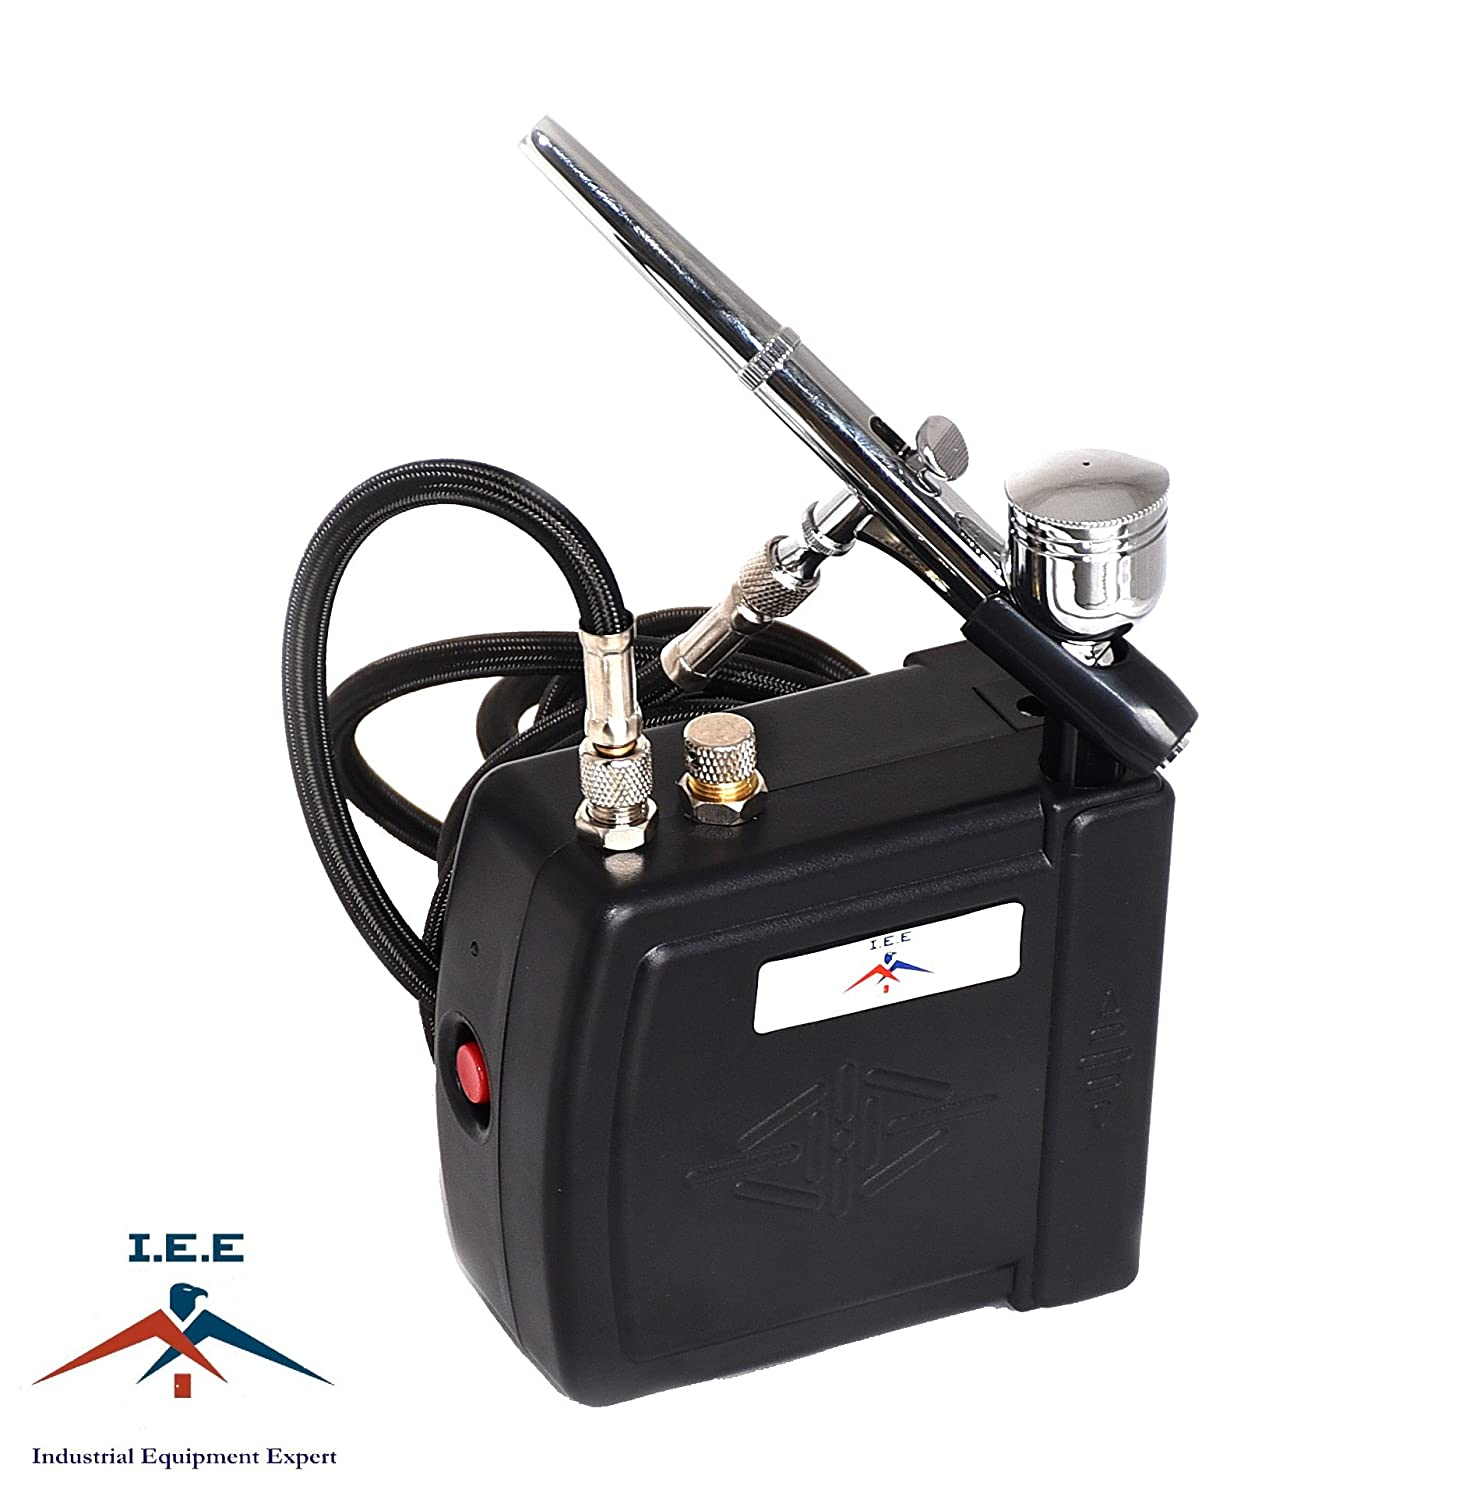 Airbrush MAS KIT-VC16-B22 Portable Mini Airbrush Air Compressor Kit Industrial Equipment Expert